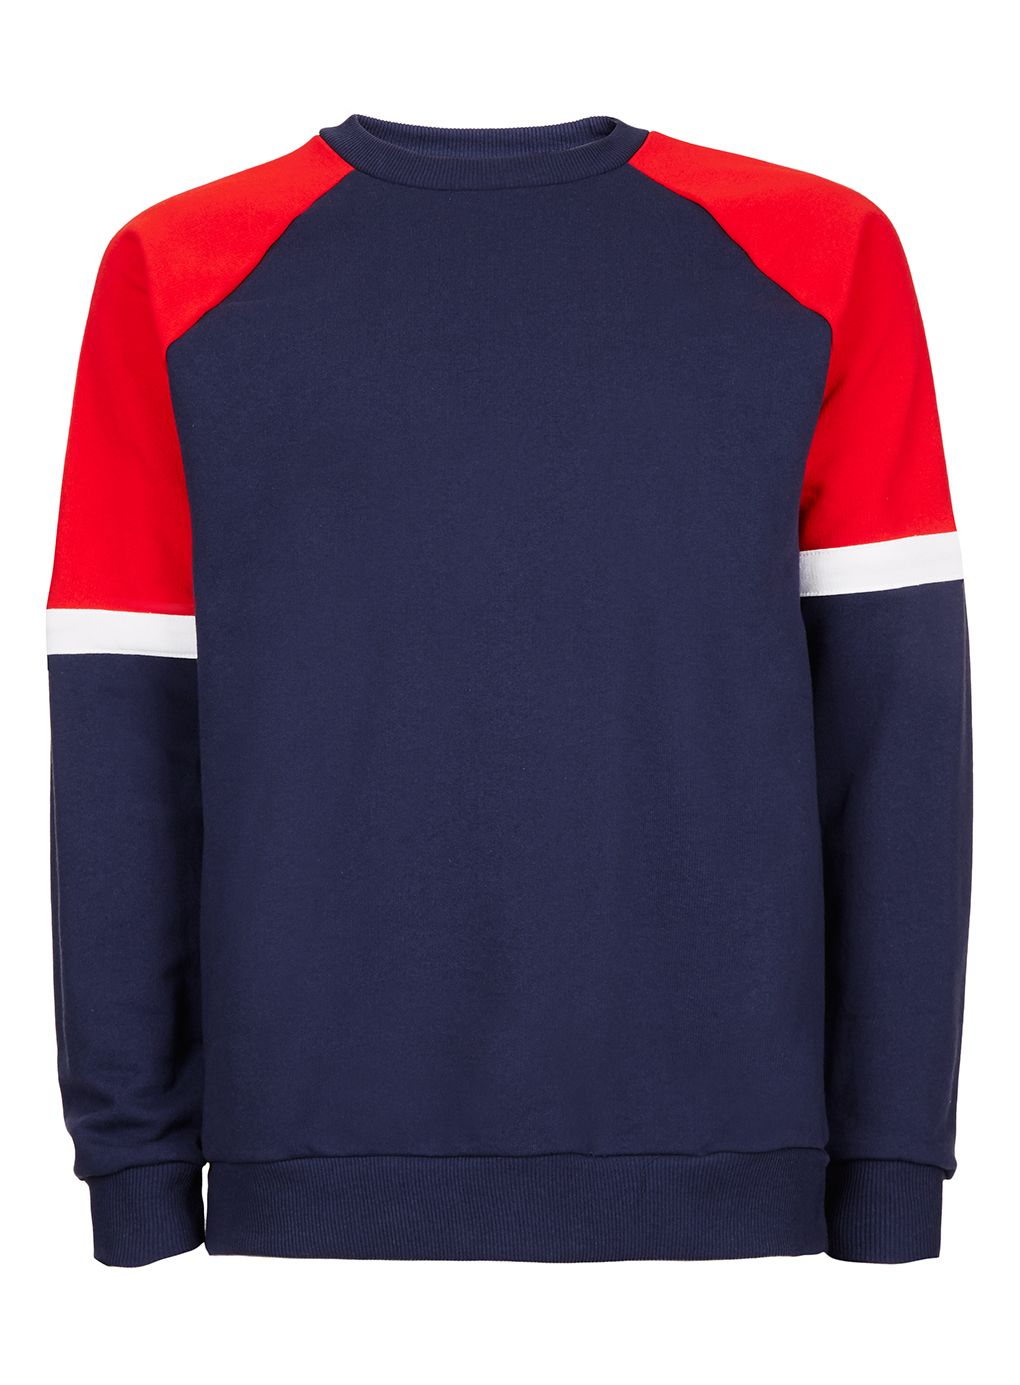 Men's Topman Navy/Red Panel Sweatshirt, Multi-Coloured